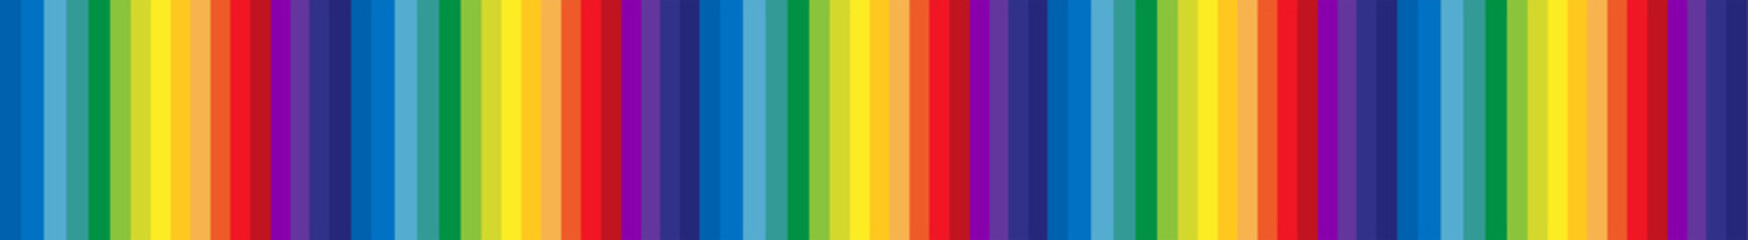 abstract background with lines, rainbow